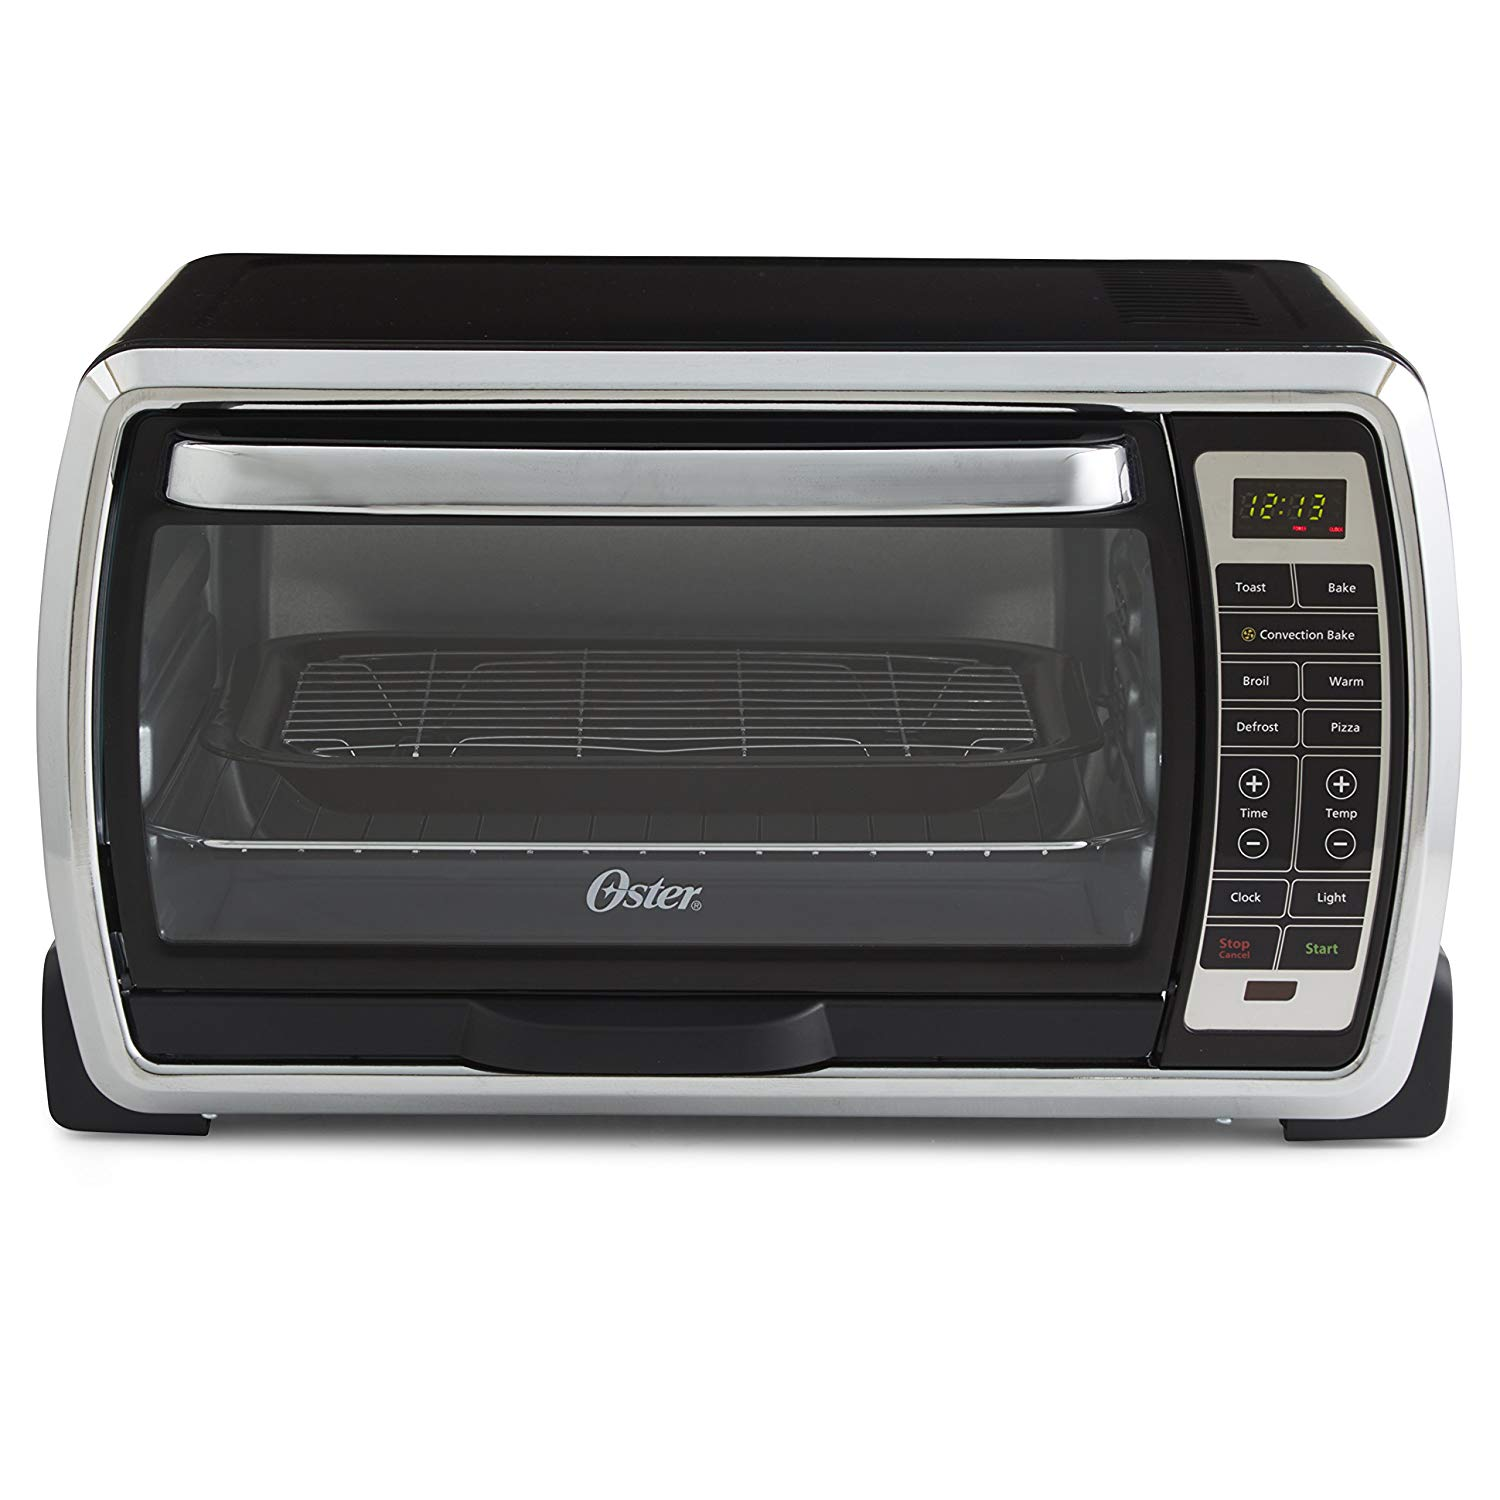 Oster Convection Countertop Oven Reviews Oster Large Capacity 6 Slice Digital Convection Toaster Oven